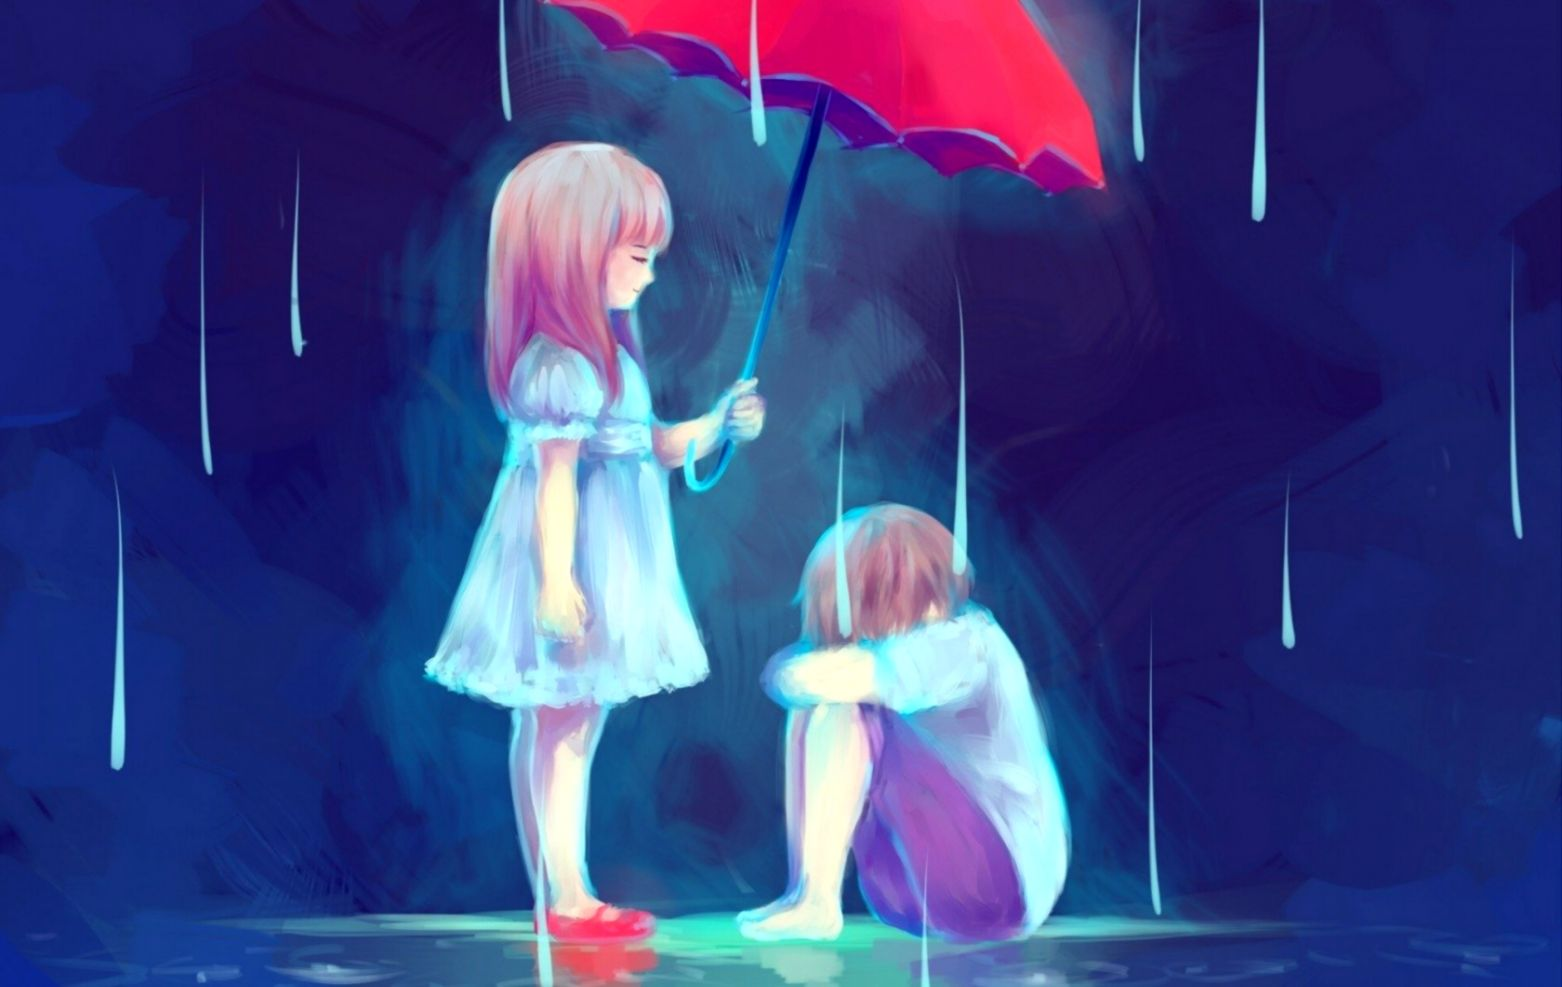 Sad Anime Love Wallpapers Hd Wallpapers Pc